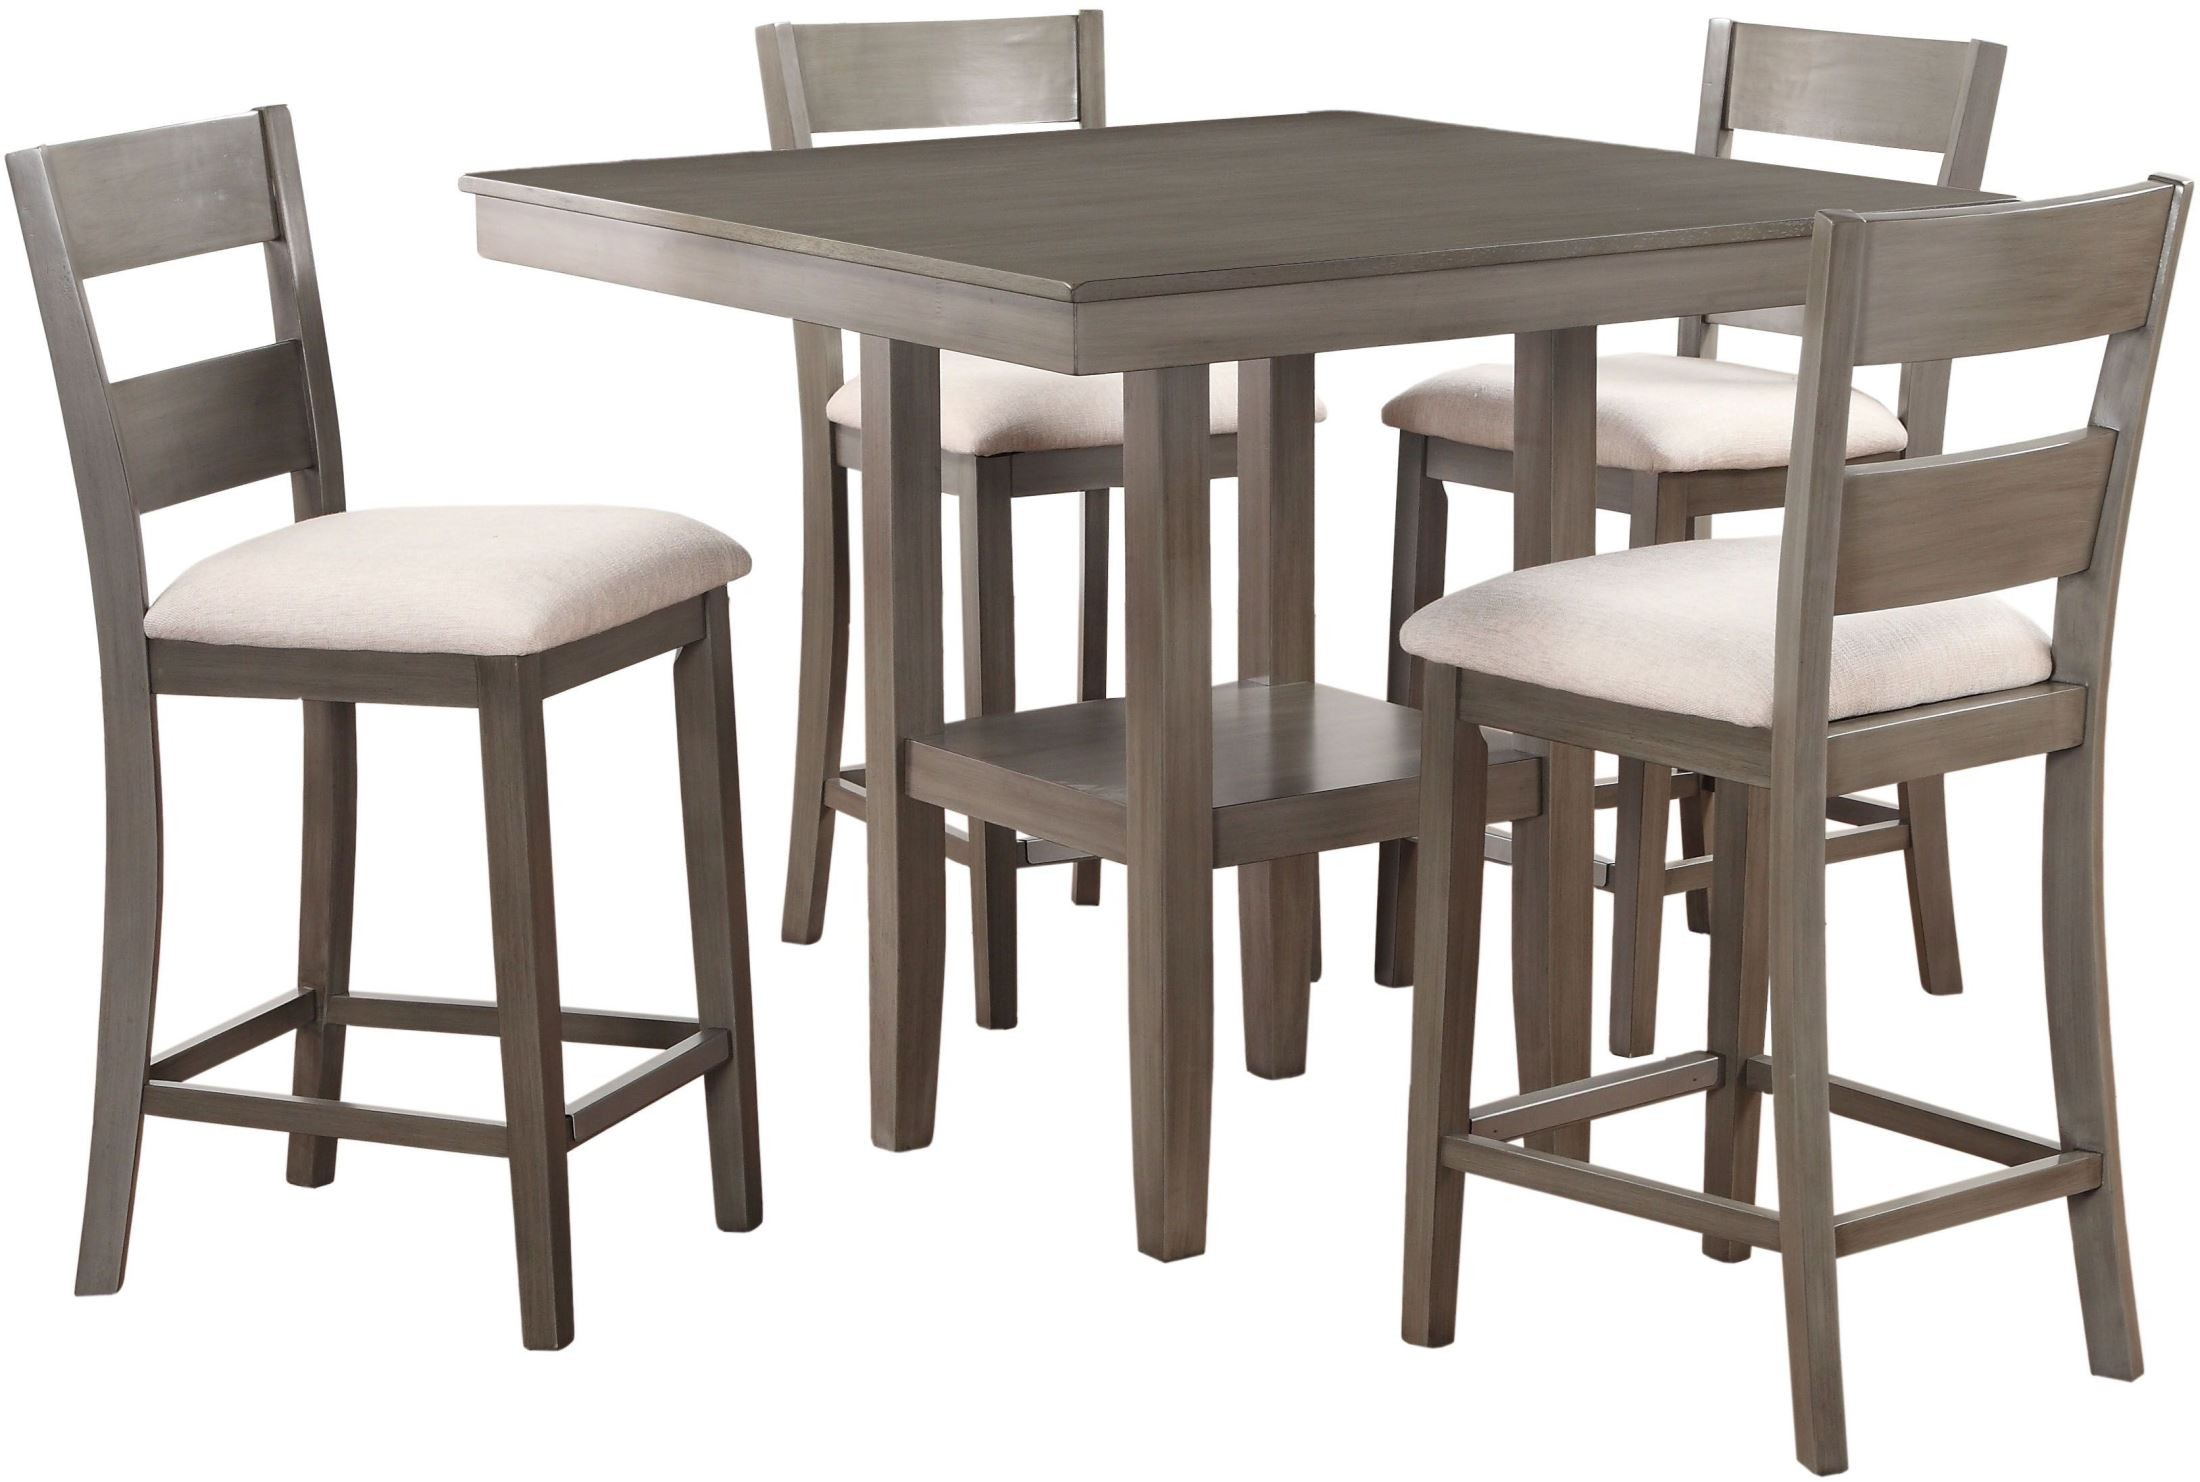 Loft Weathered Grey 5 Piece Counter Height Dining Room Set. 1801322. 1801323